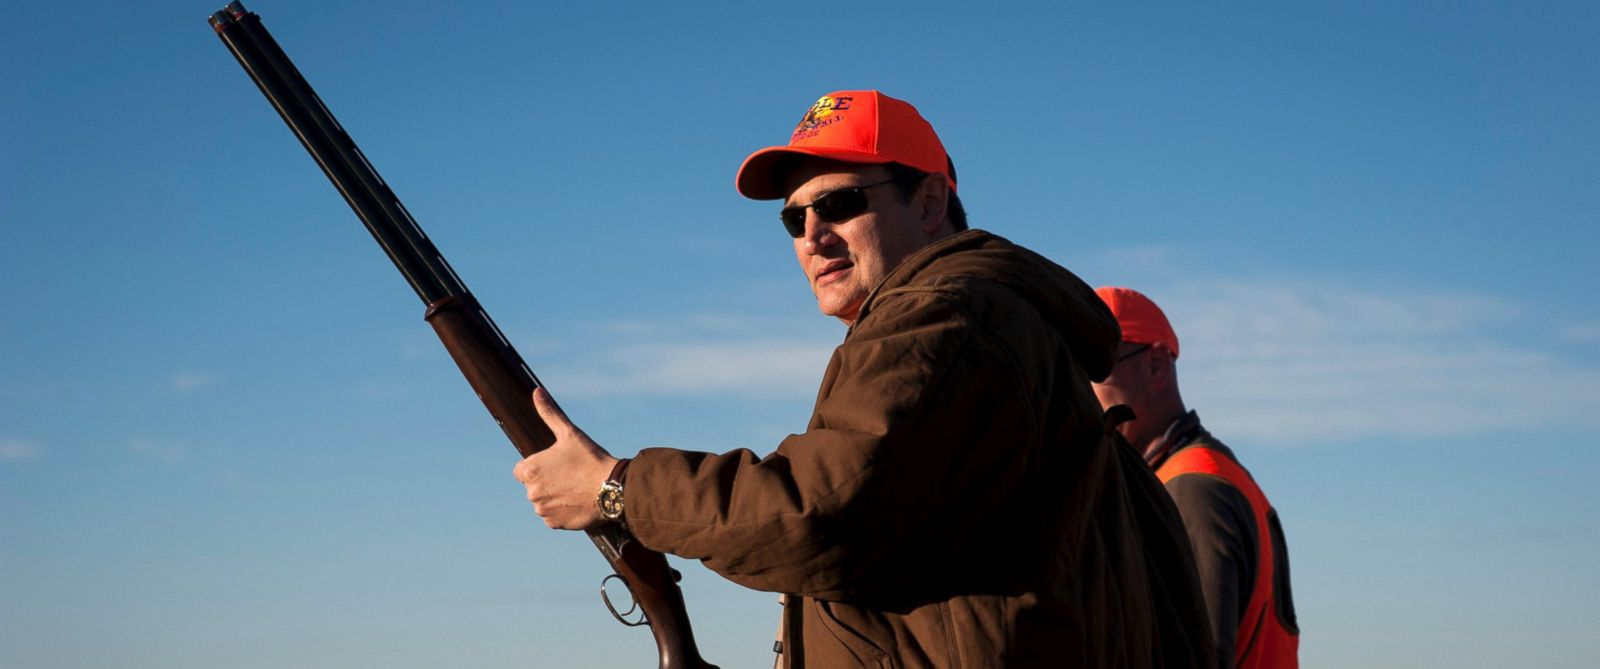 PHOTO:Republican presidential candidate Sen. Ted Cruz pauses before heading further down field during the Col. Bud Day Pheasant Hunt hosted by Congressman Steve King outside of Akron, Iowa, Oct. 31, 2015.